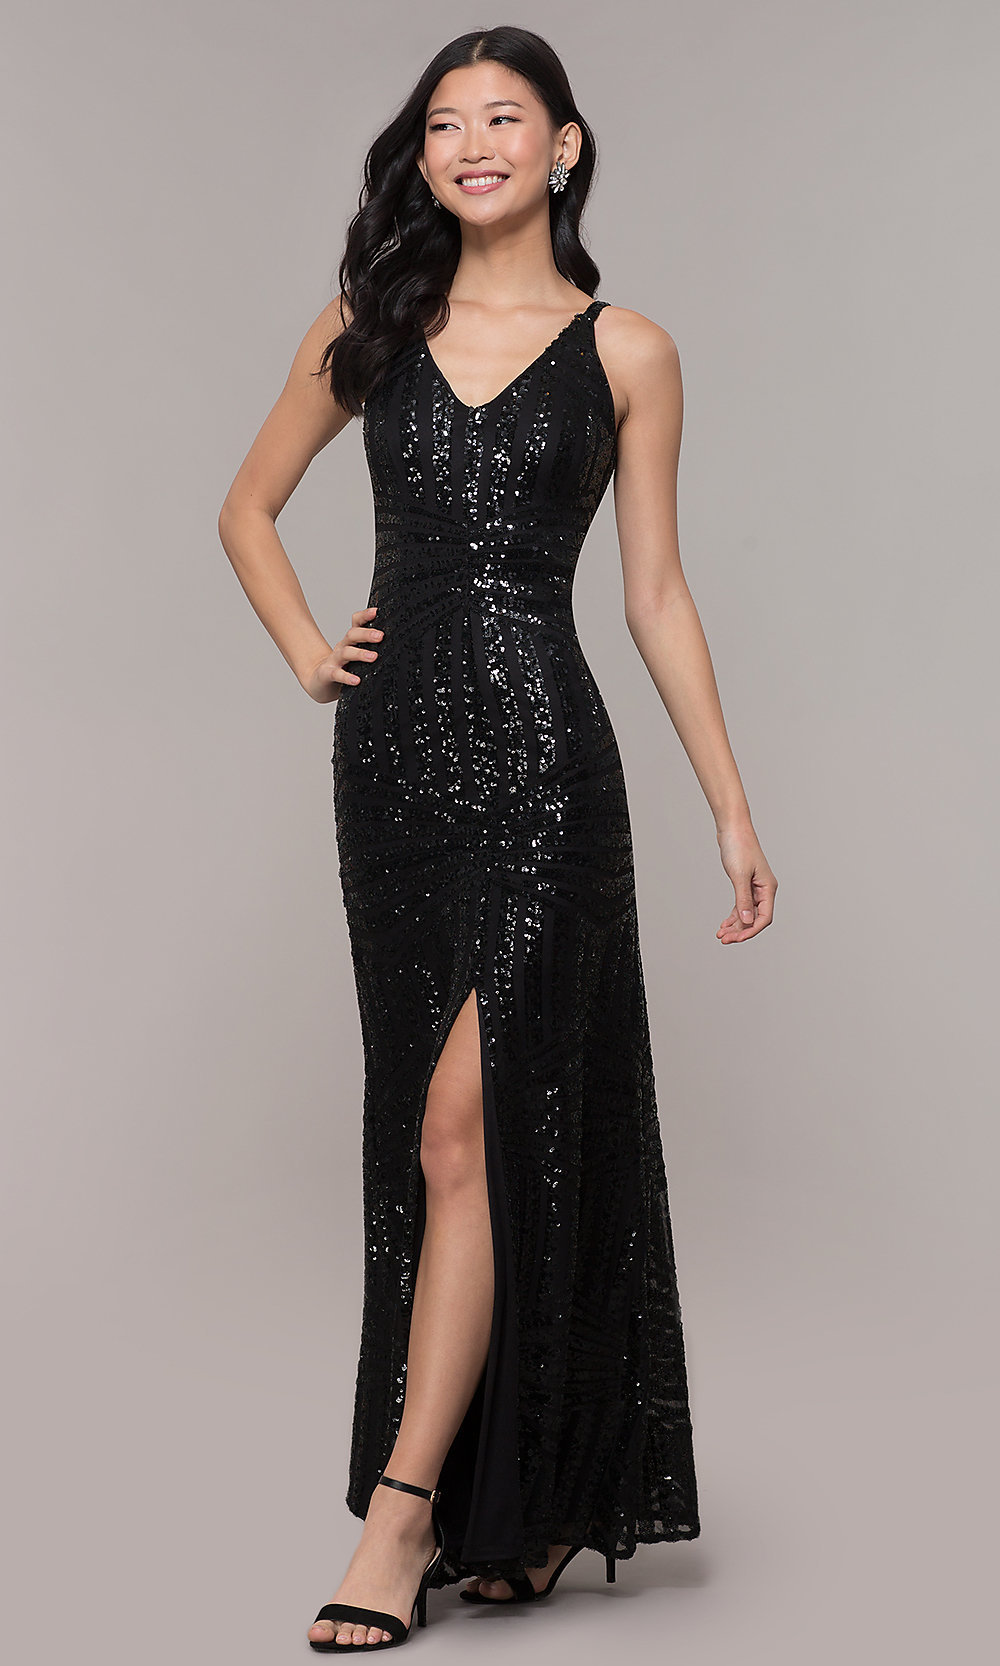 f05f437c0eb Sequin Prom Dresses   Sequinned Prom Gowns 2018 - Lunss. Plunging Black  Sequin Backless Mermaid Long ...